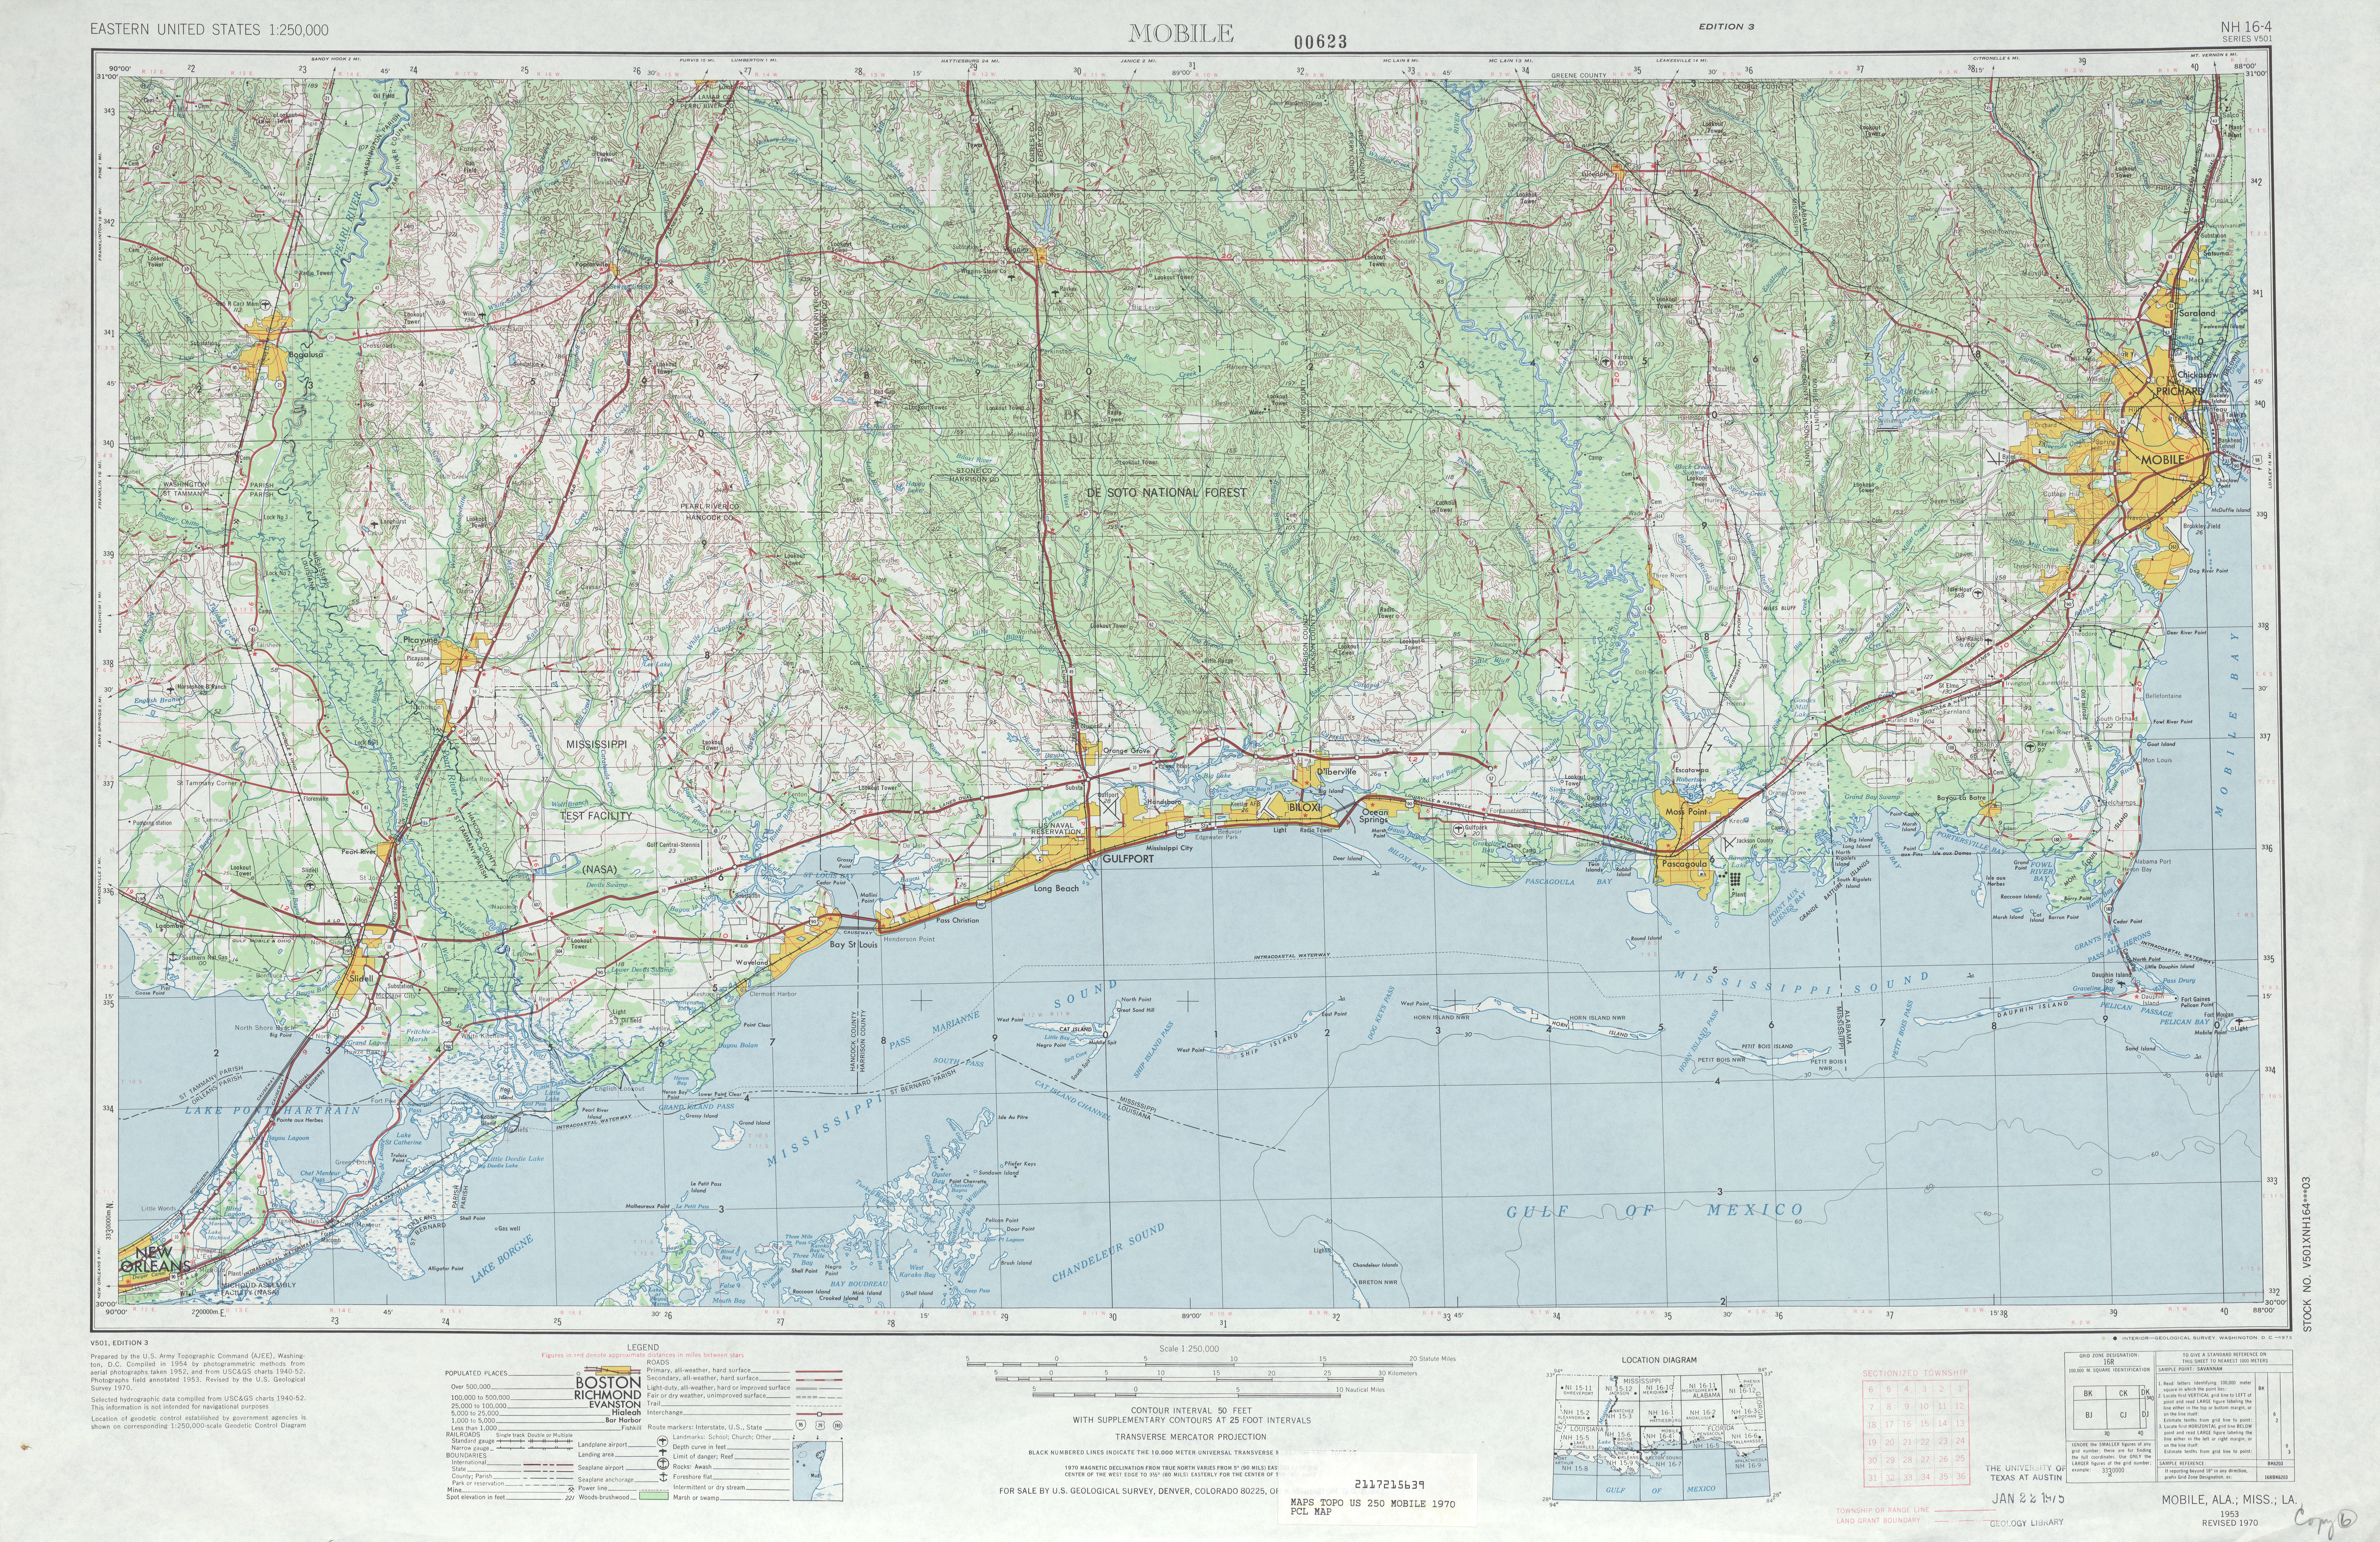 Alabama Topographic Maps - Perry-Castañeda Map Collection - UT ...